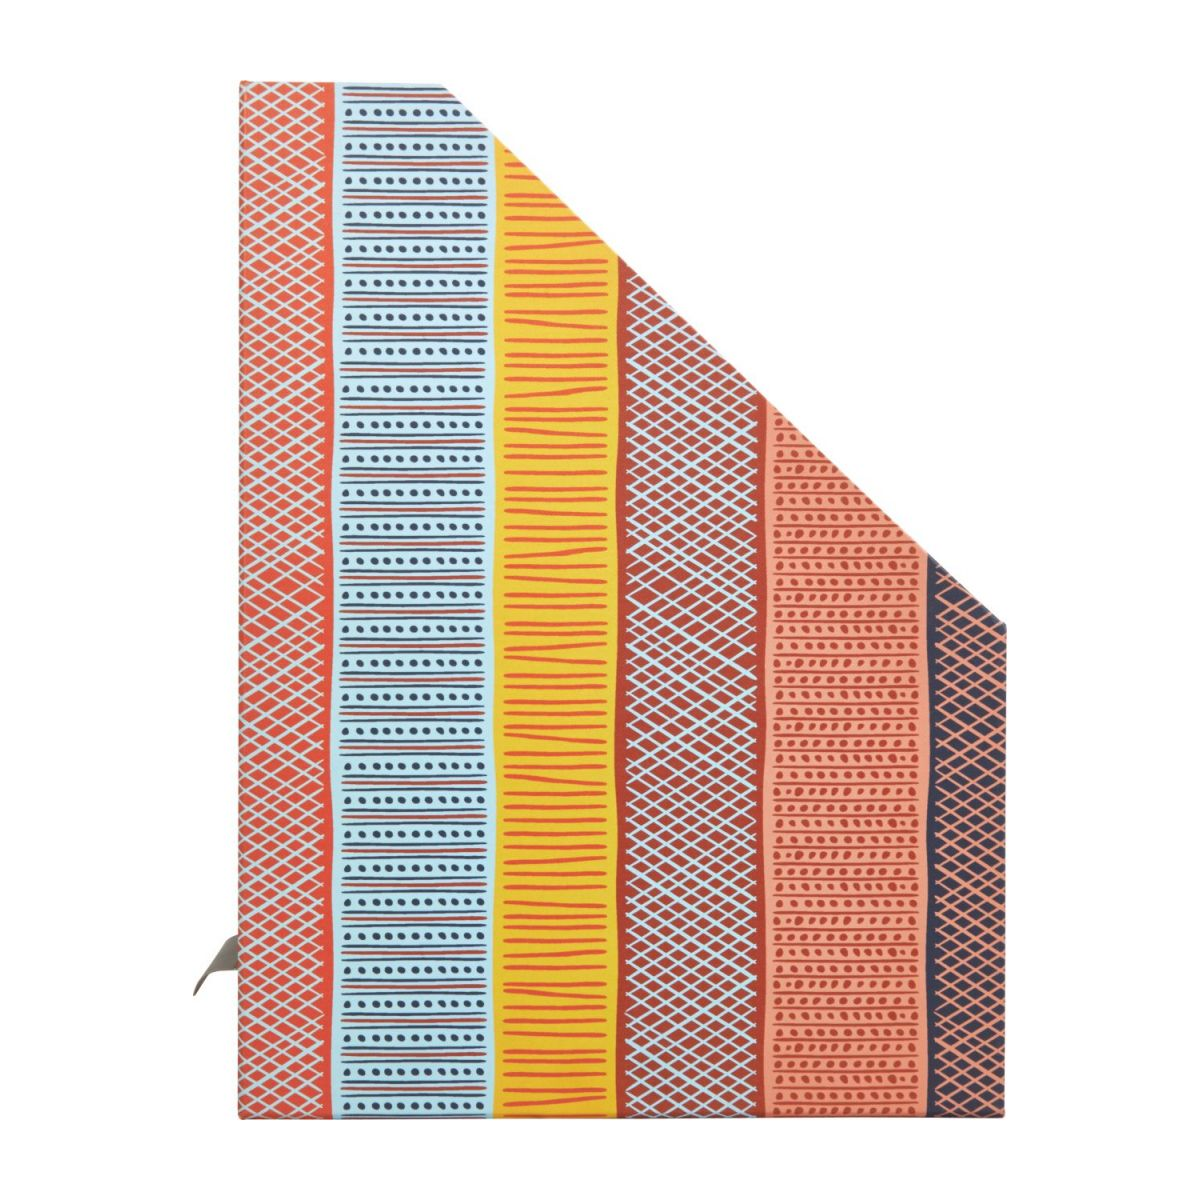 Document storage, with patterns n°5